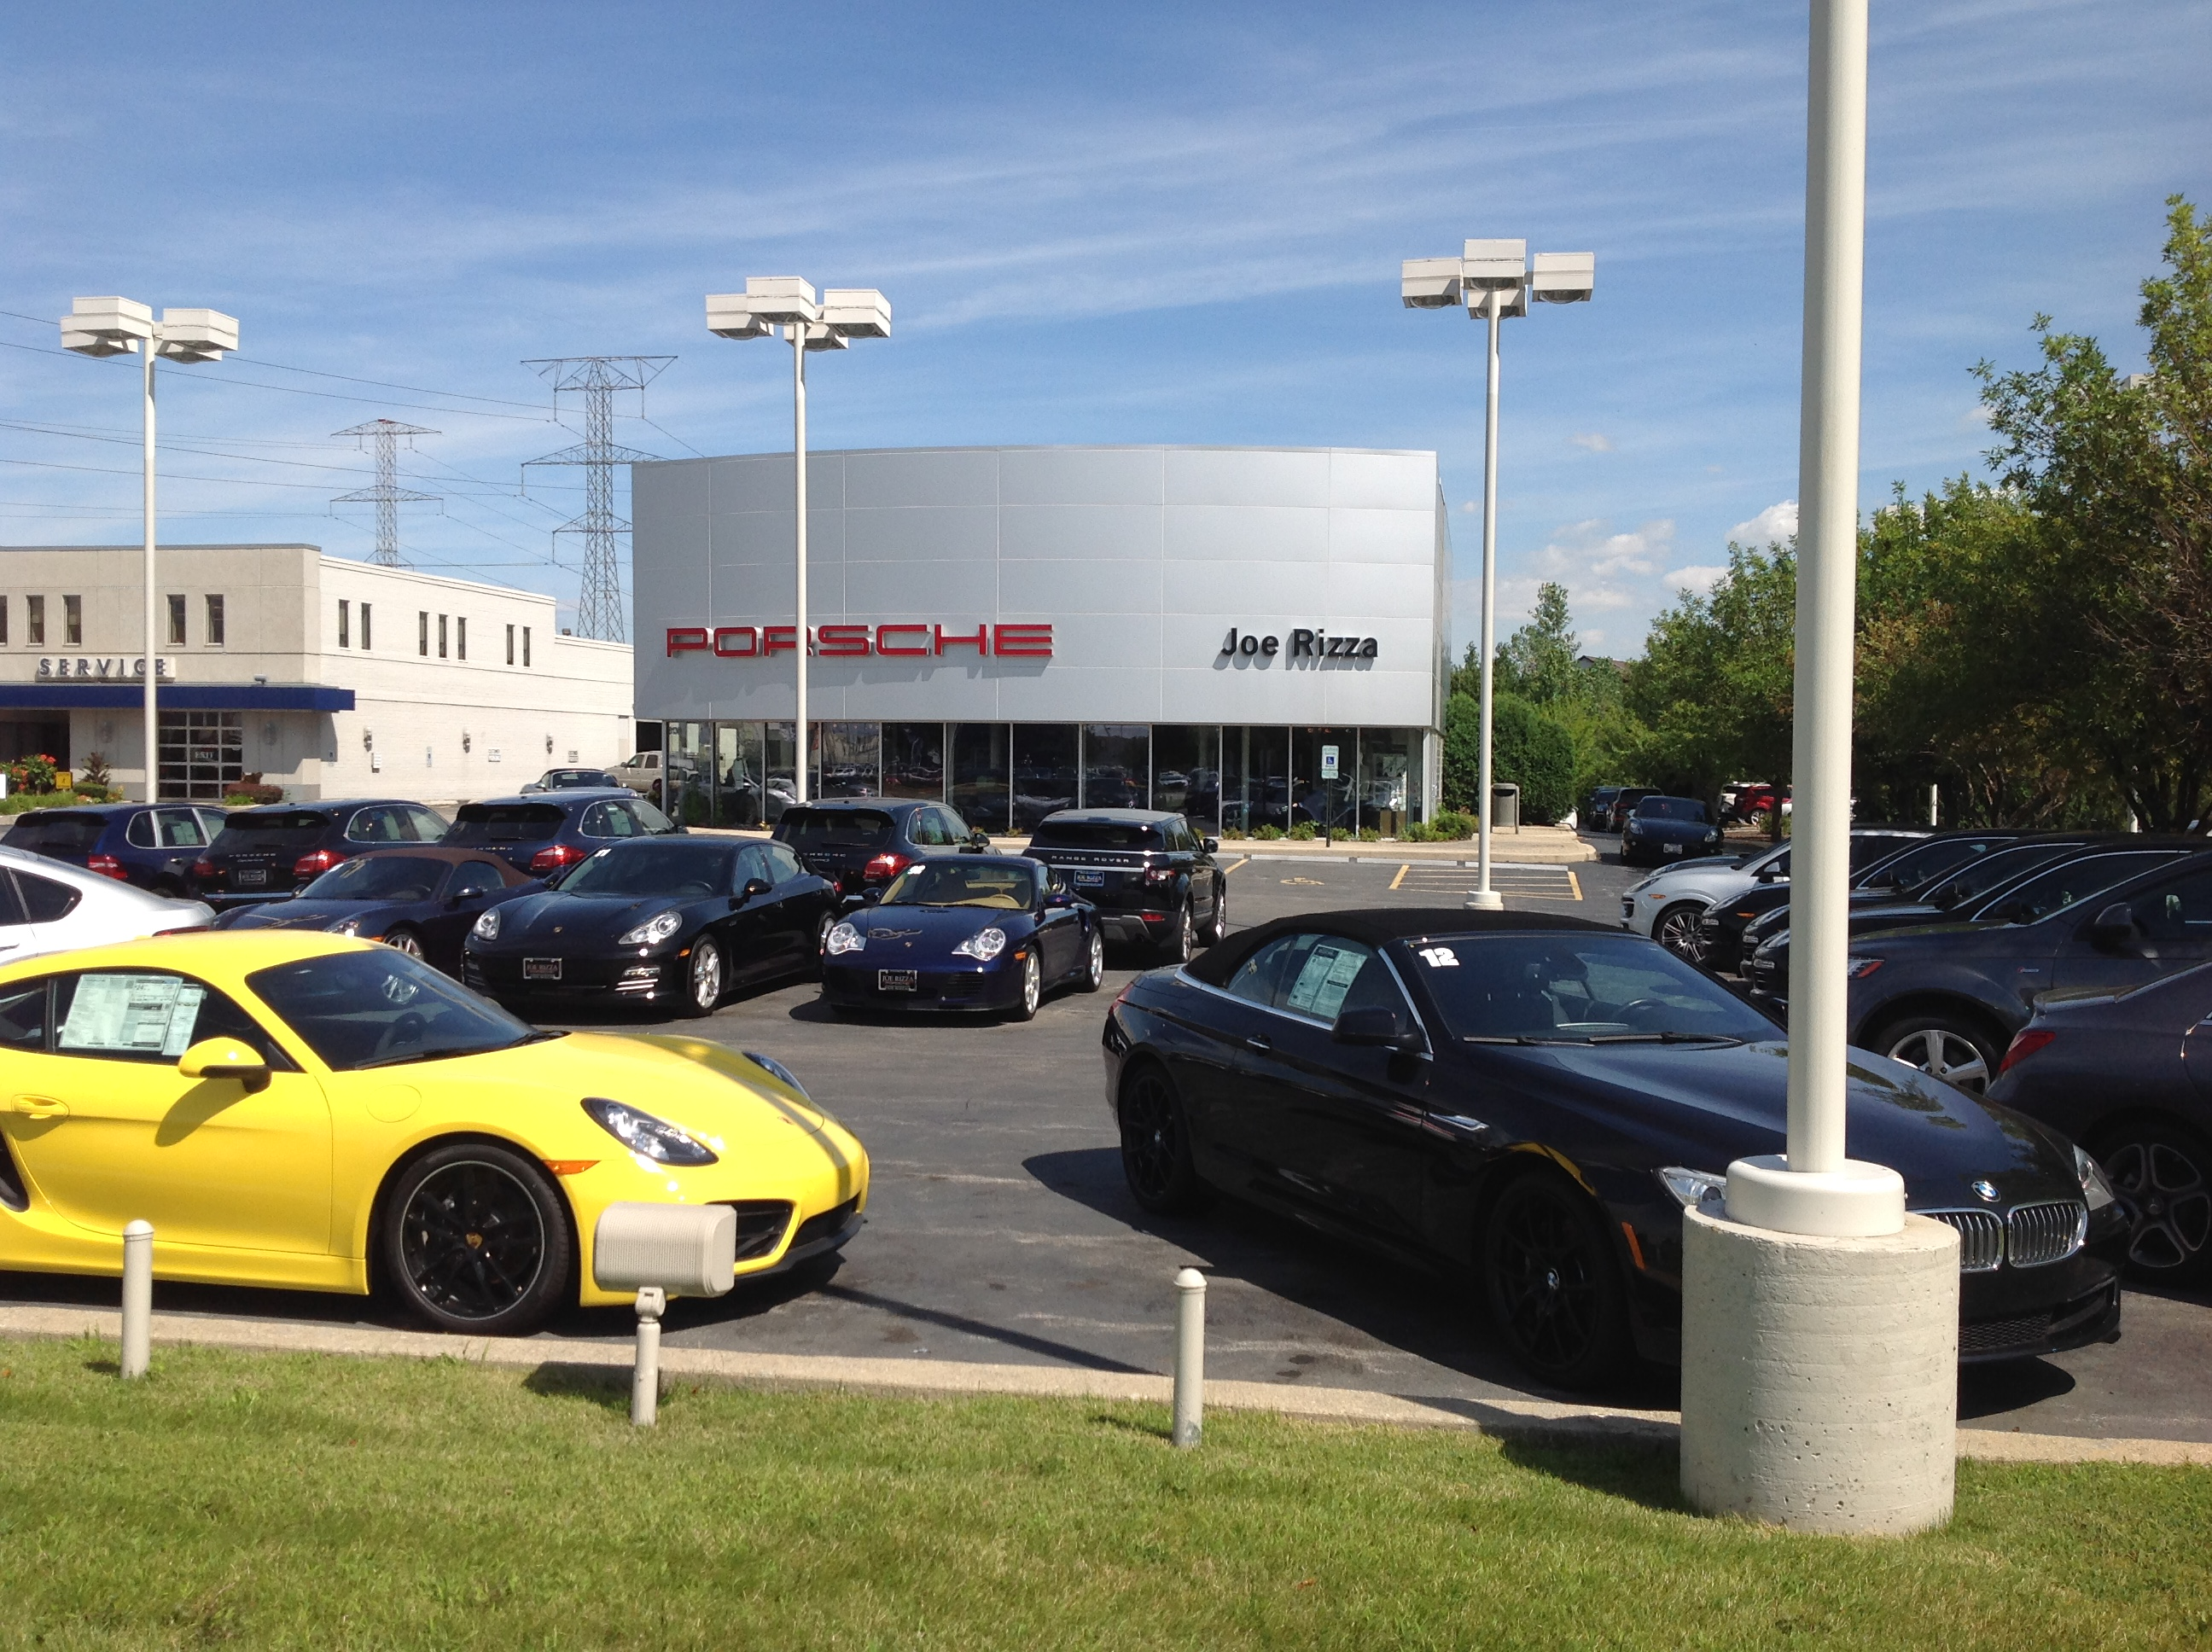 porsche orland park a joe rizza dealership in orland park il whitepages. Black Bedroom Furniture Sets. Home Design Ideas